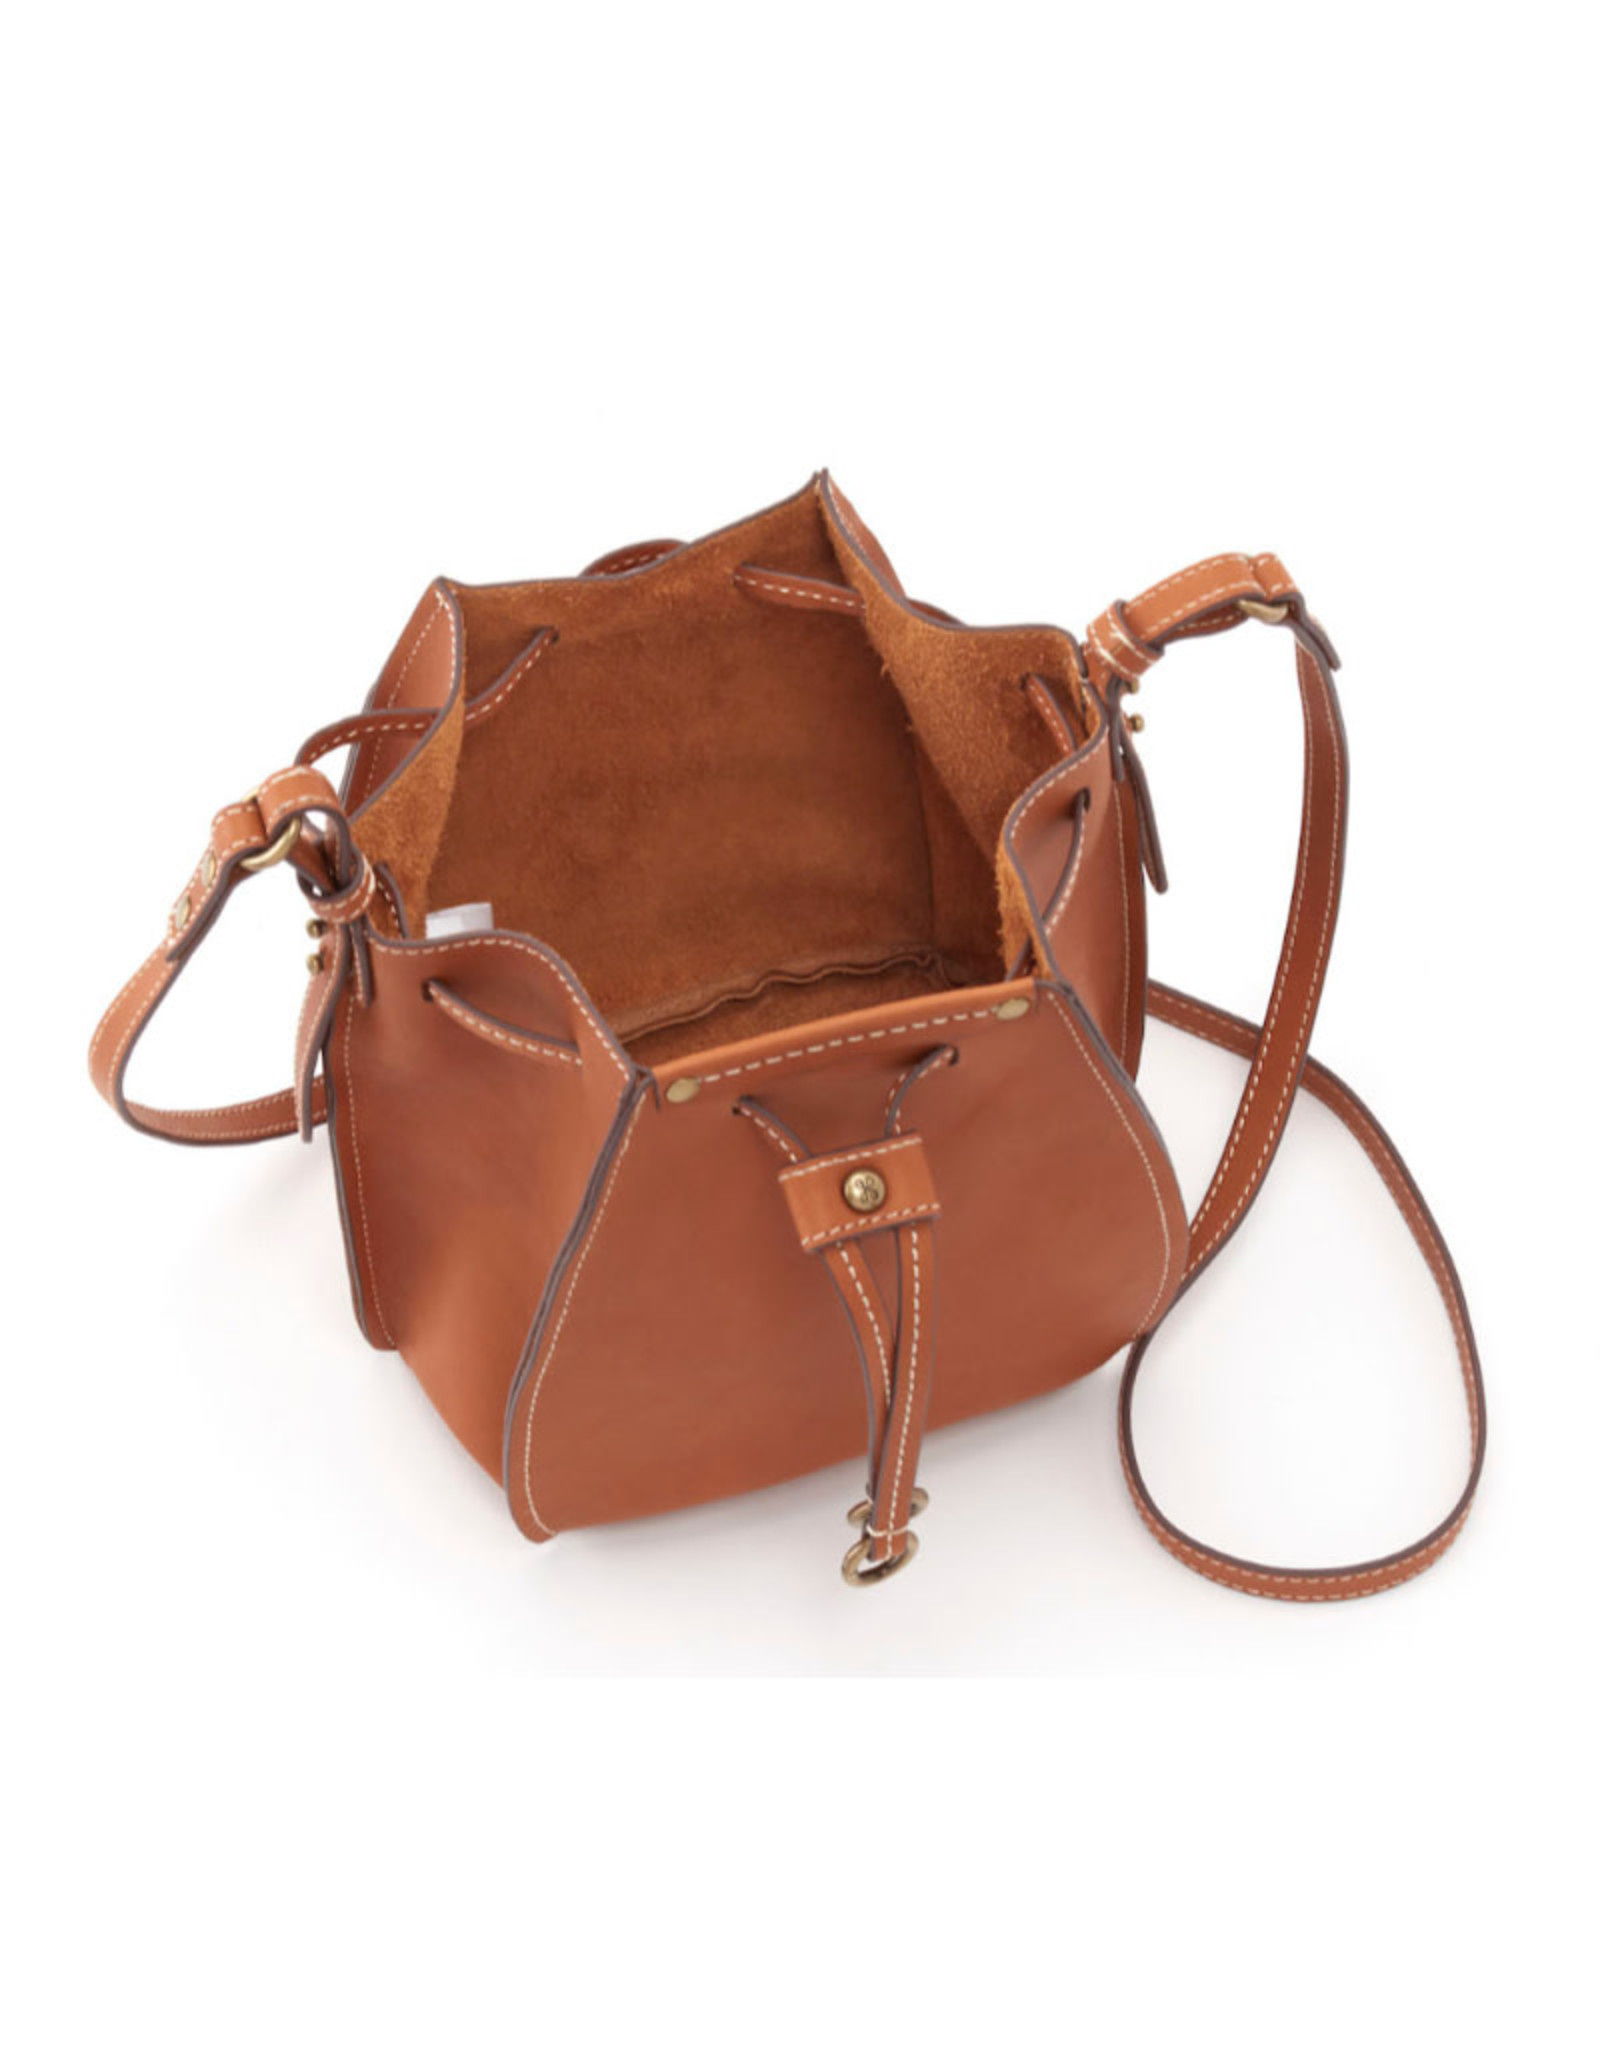 Hobo Cinder Bucket Bag